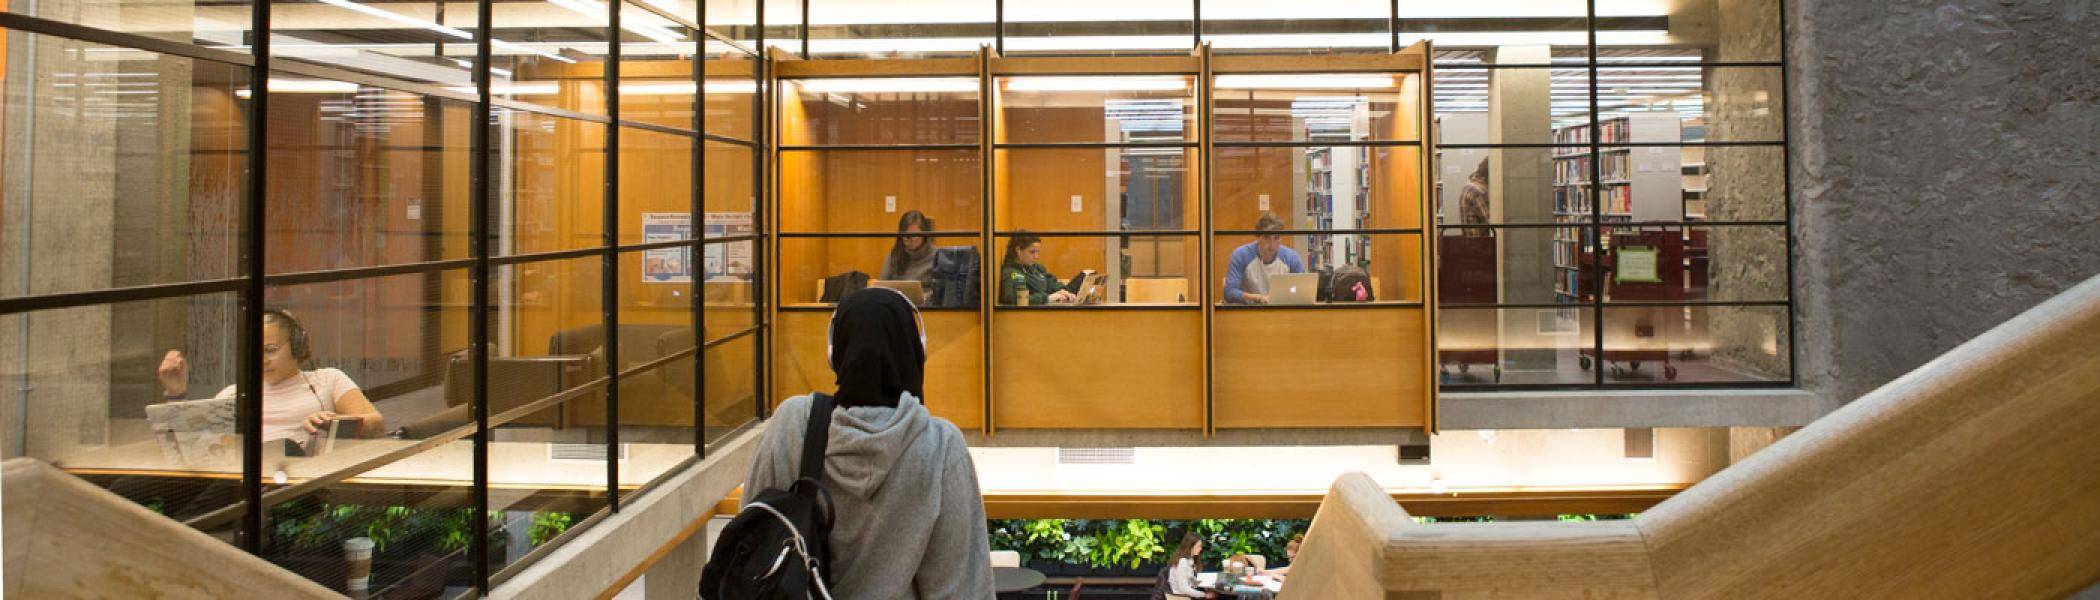 View from the top of the stairs at Bata library showing students working in study carols